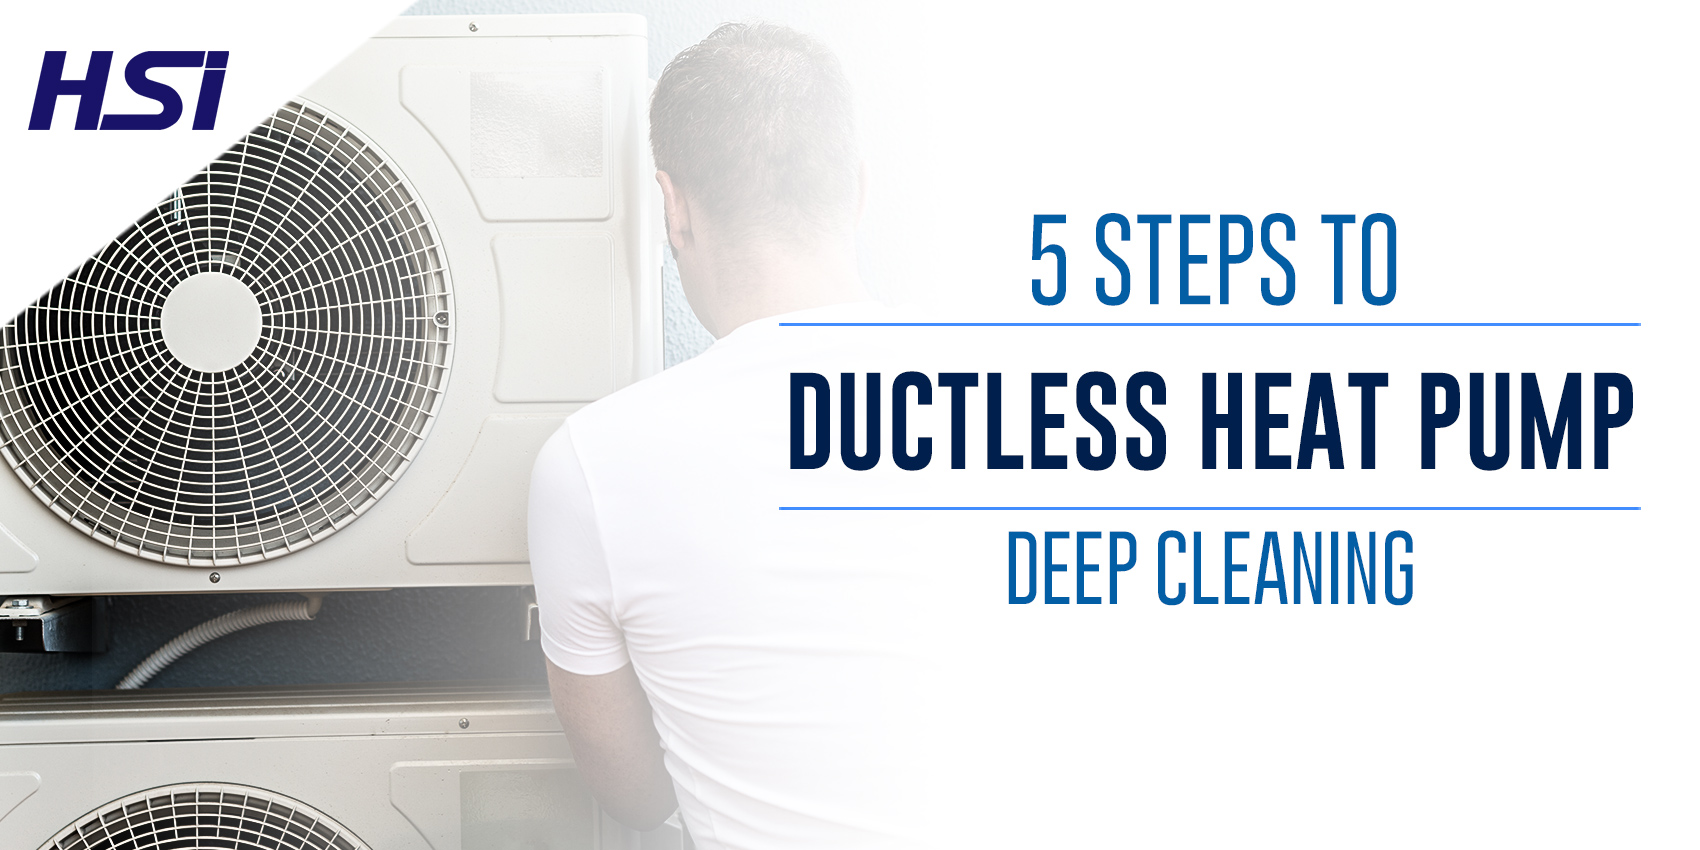 5 Steps to Ductless Heat Pump Deep Cleaning